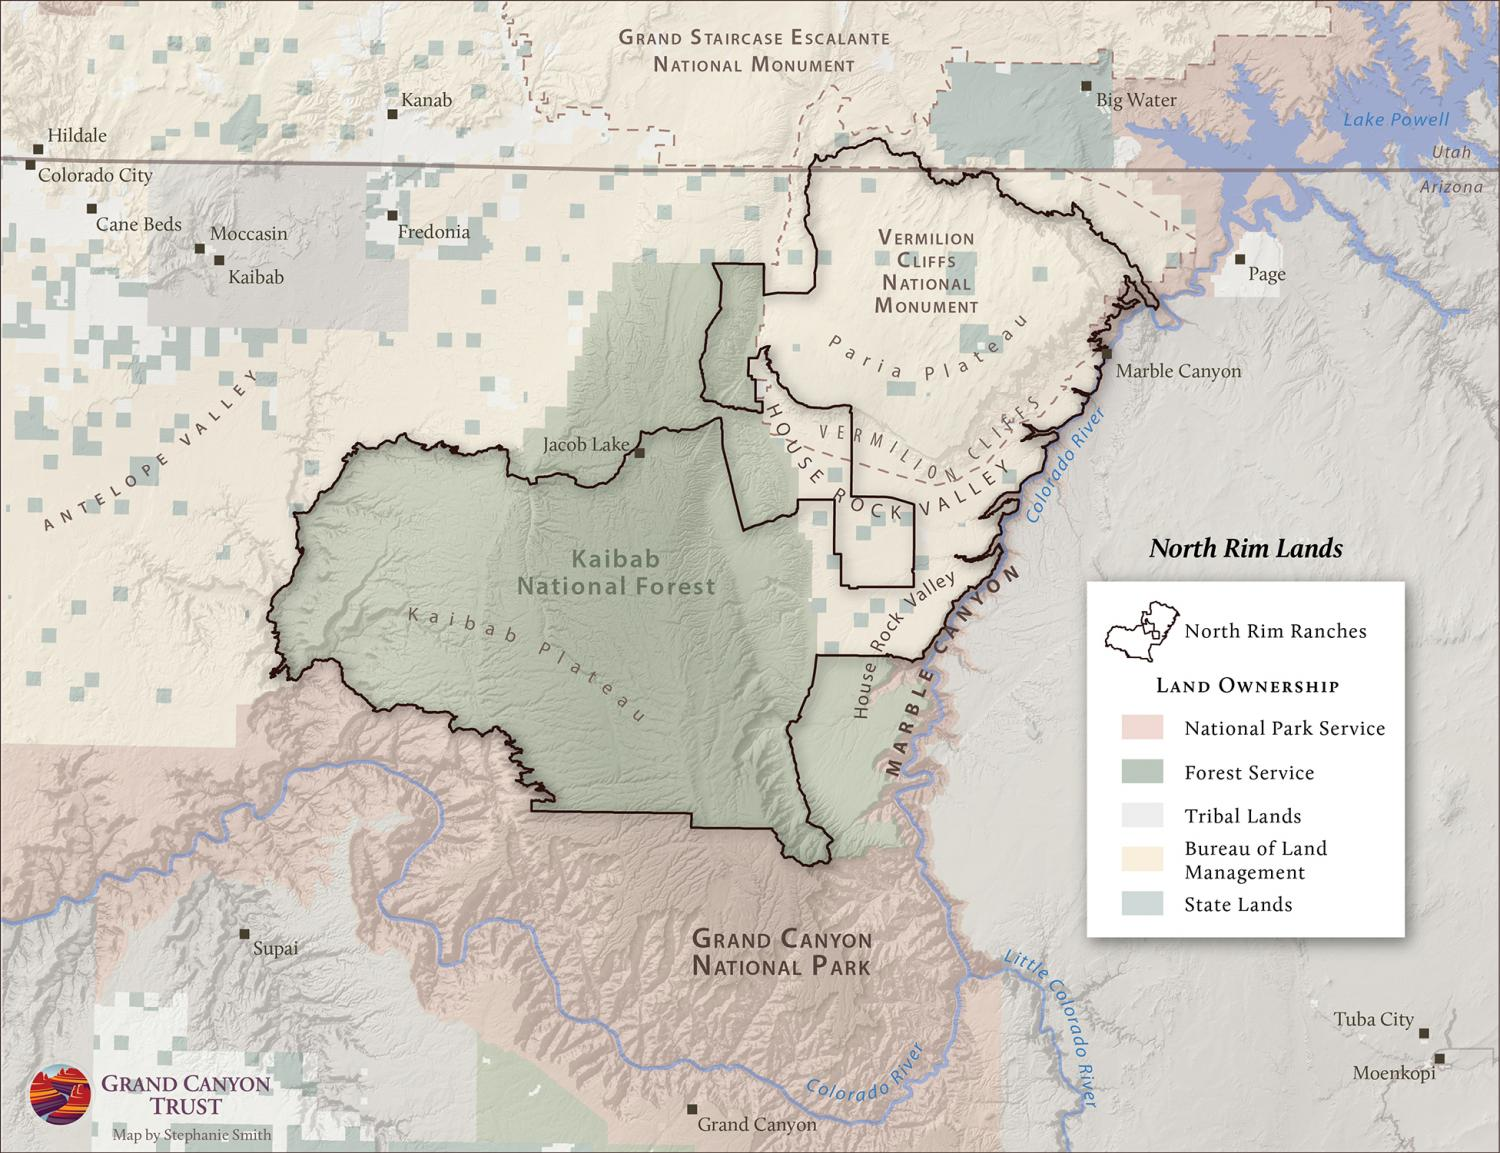 North Rim Ranches map